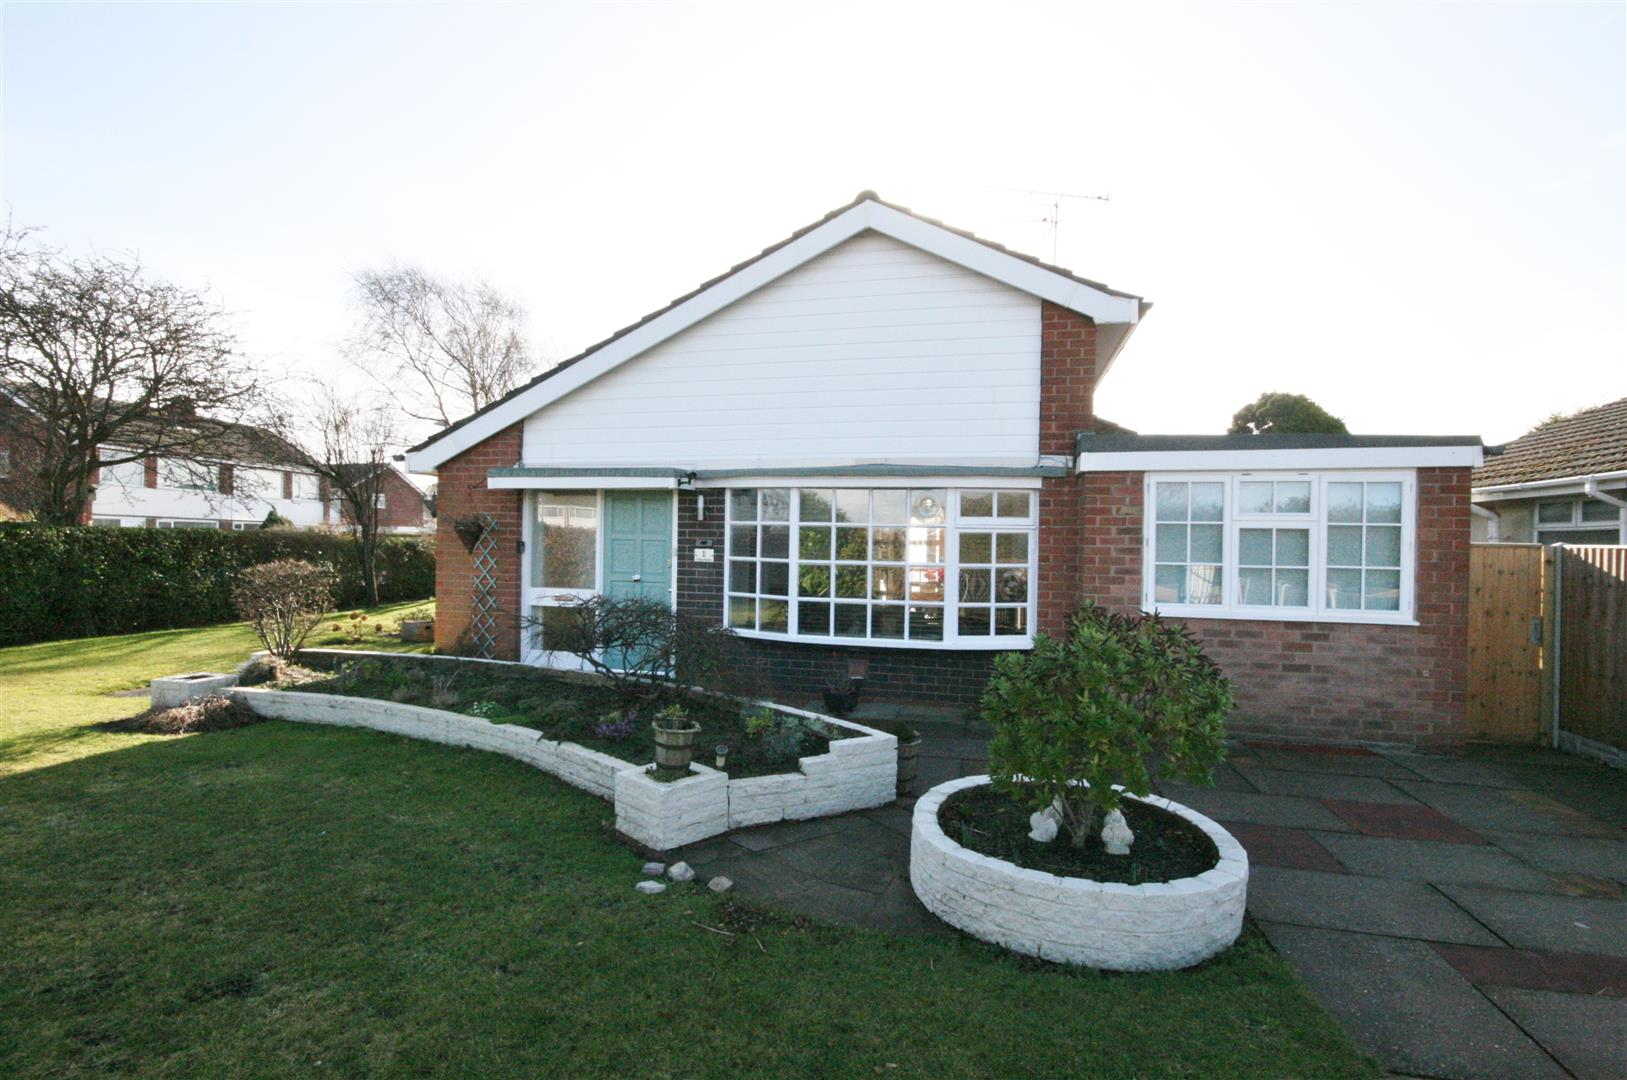 3 Bedrooms Detached Bungalow for sale in Otley Road, Lytham St. Annes